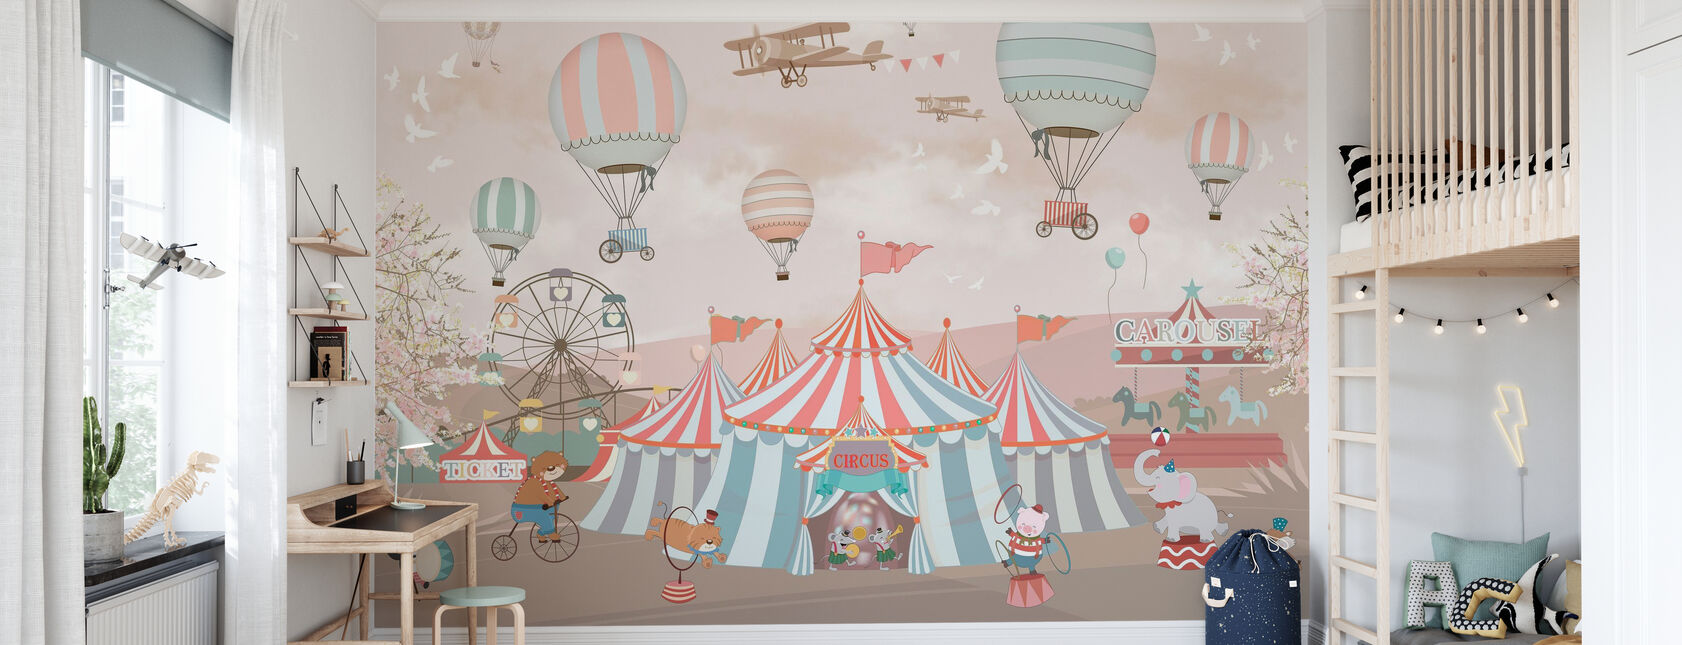 Circus Animals - Wallpaper - Kids Room